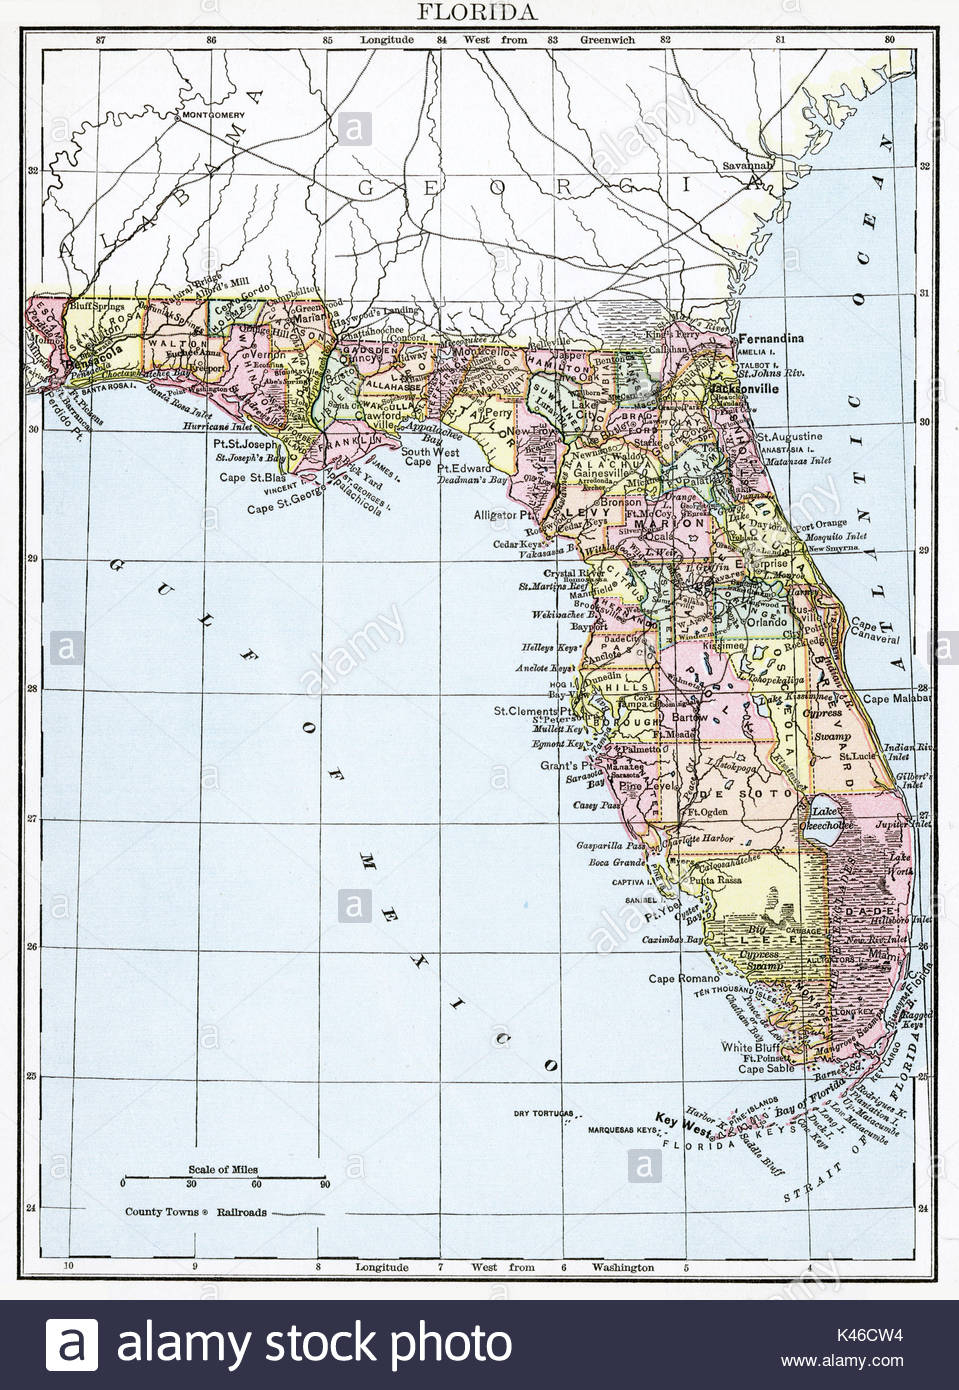 Fort Lauderdale Florida Map Stock Photos & Fort Lauderdale Florida - Where Is Fort Lauderdale Florida On The Map